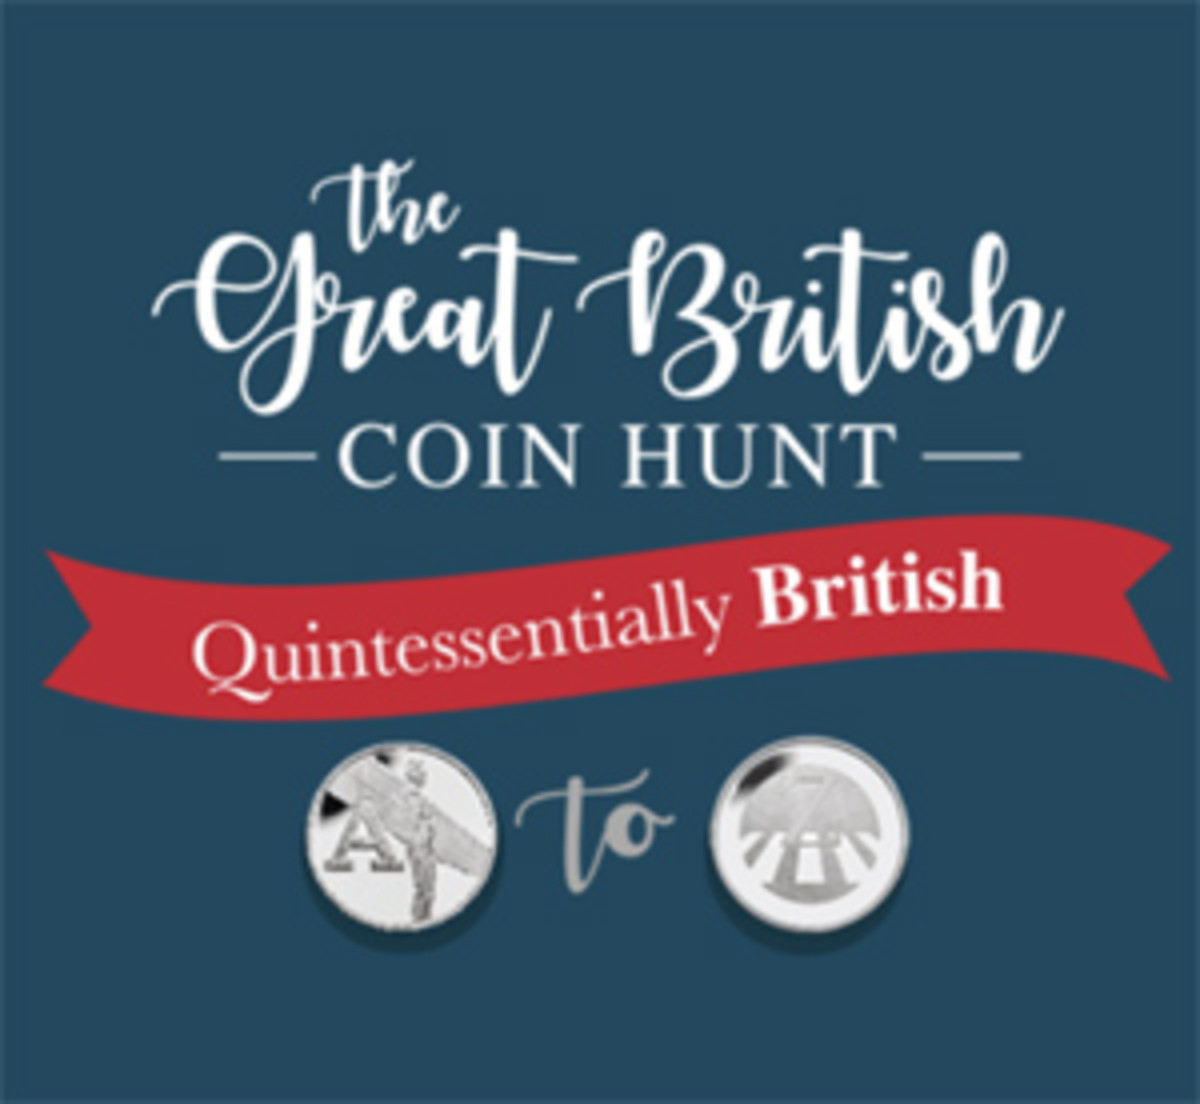 Learn more about The Great British Coin Hunt online as well.